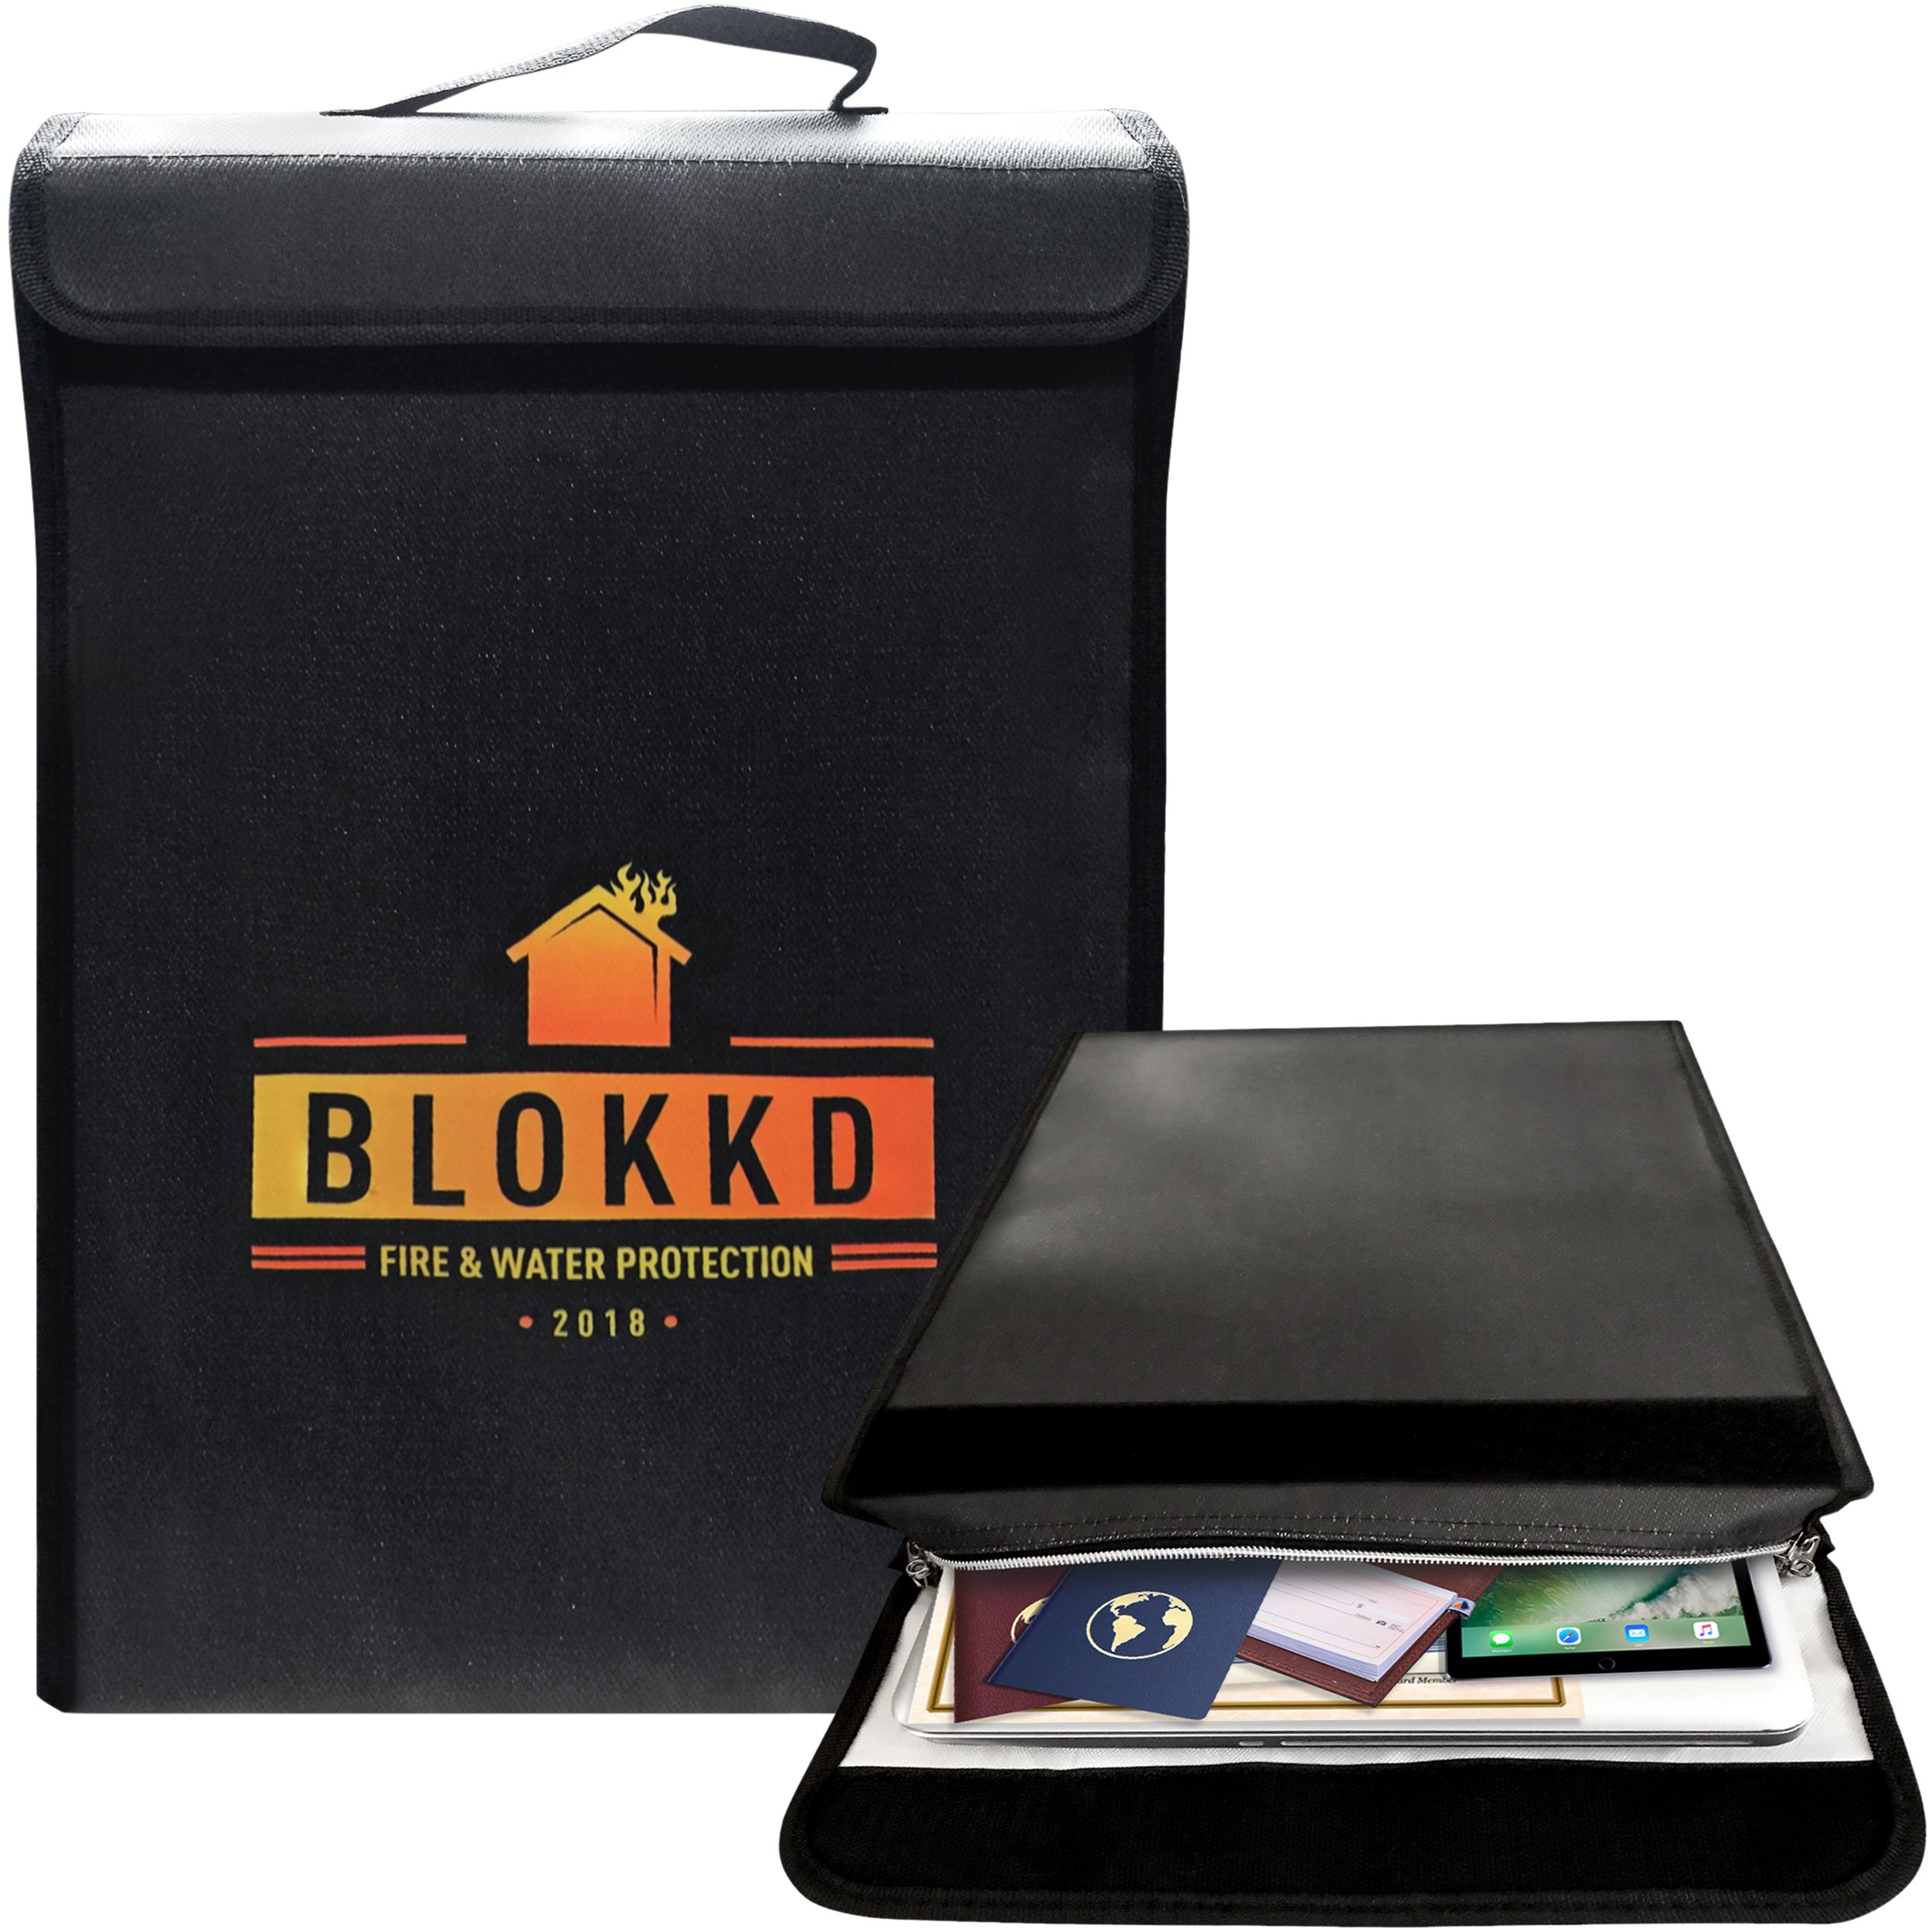 Fireproof Lock Box Bag for Documents - Fire Proof Safe Document Holder Bags - Waterproof Storage Safety for Files, Money, Passport, Jewelry, Valuables - 16 x 11.5 x 3 inches by Blokkd by BLOKKD